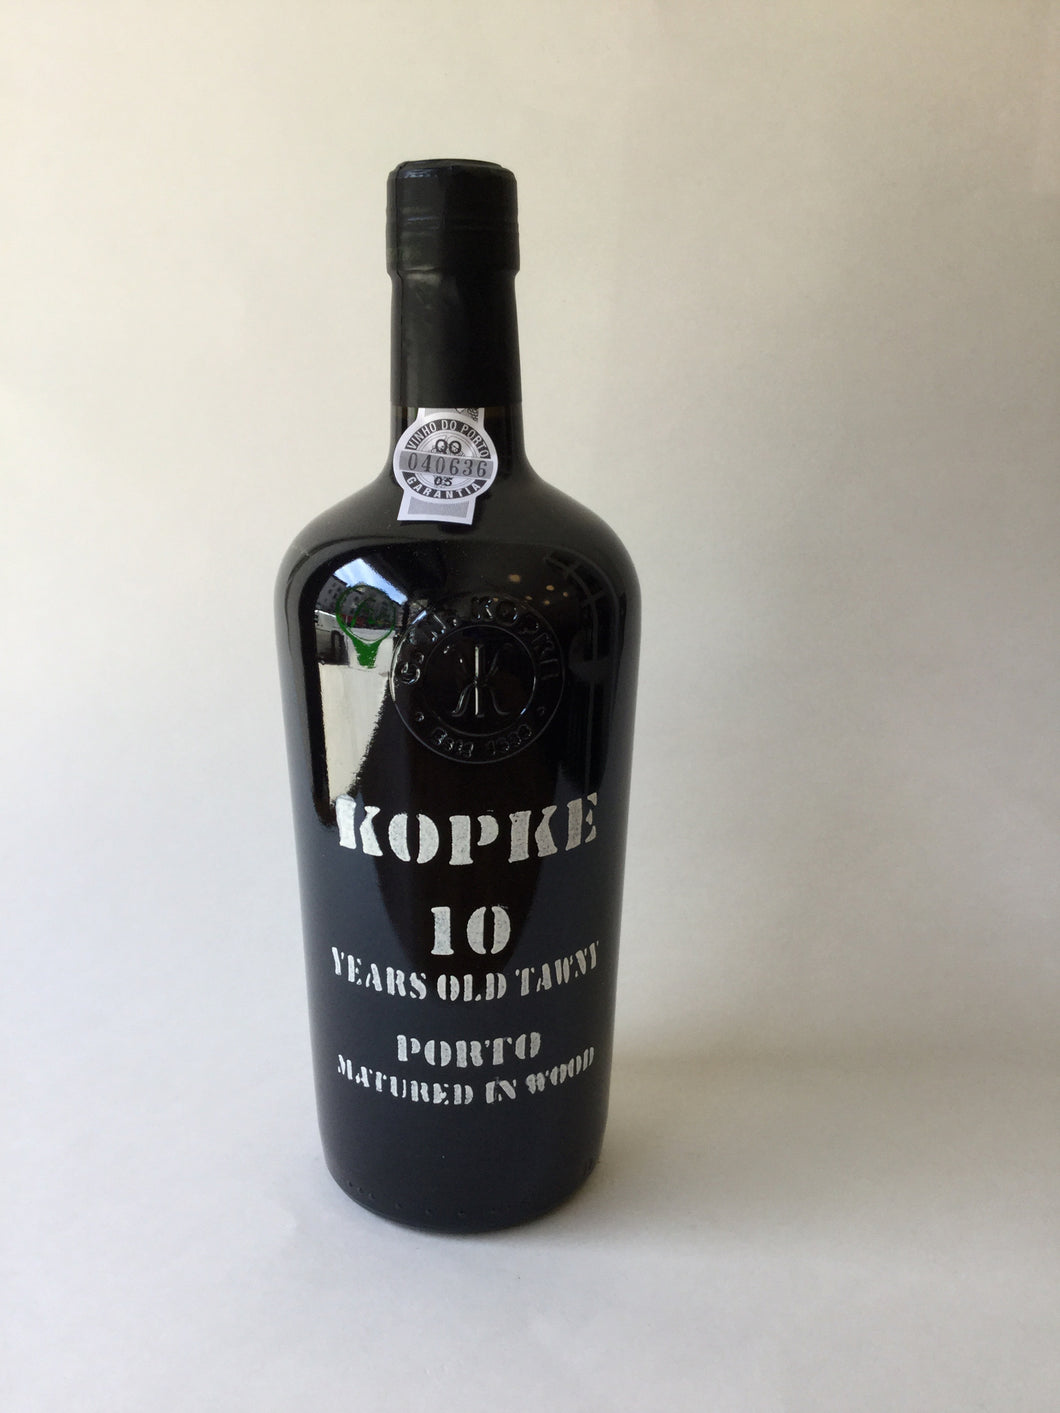 Porto Kopke 10 Years Old Tawny, 750ml - Frankly Wines